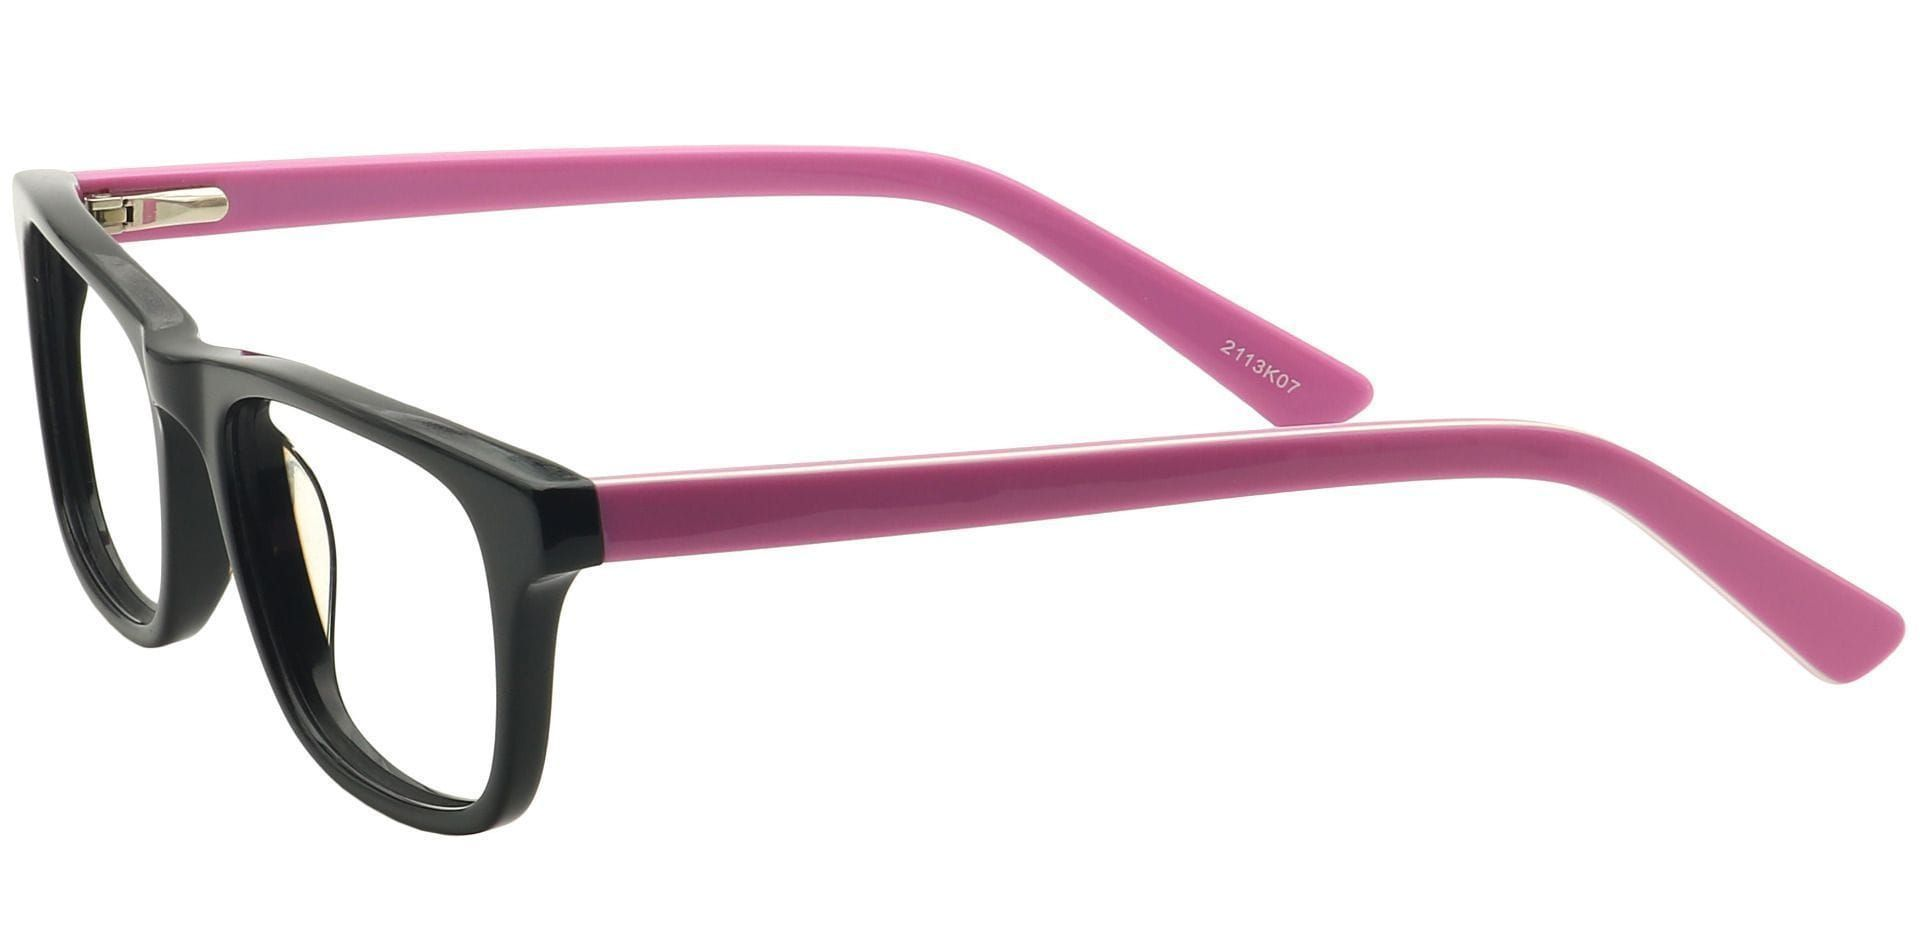 Blair Rectangle Prescription Glasses - Black